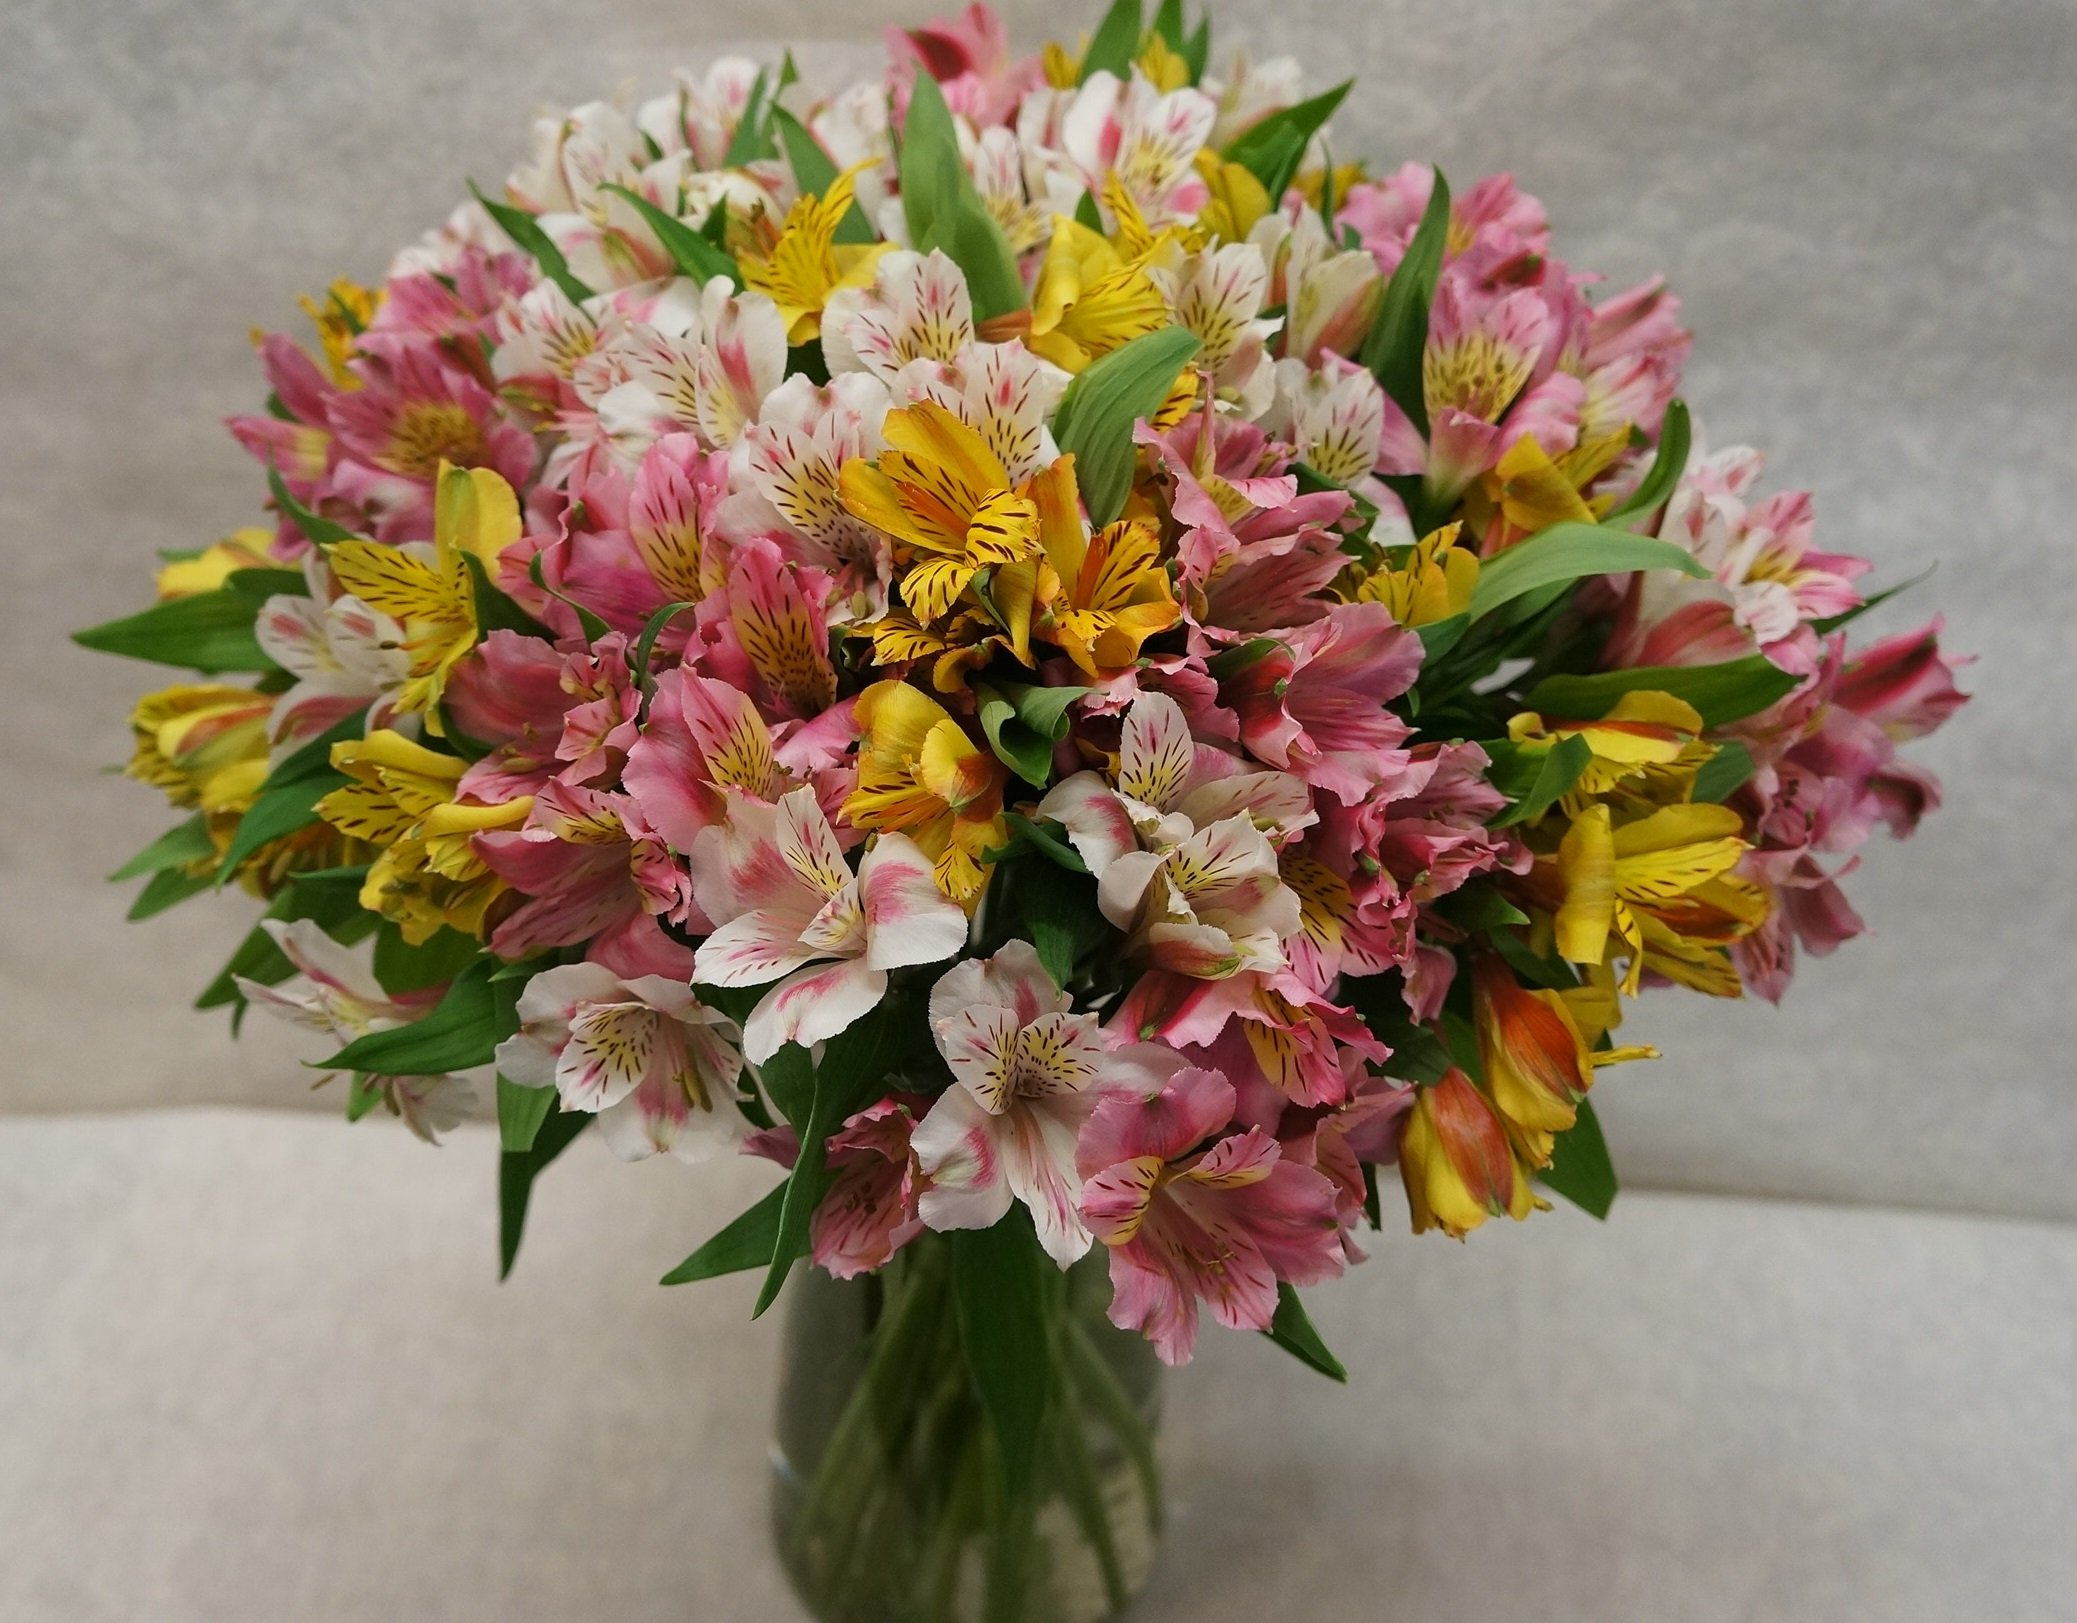 Alstromeria Peruvian Lilies (100+ Blooms with a Free Vase) by Eflowerwholesale by Eflowerwholesale